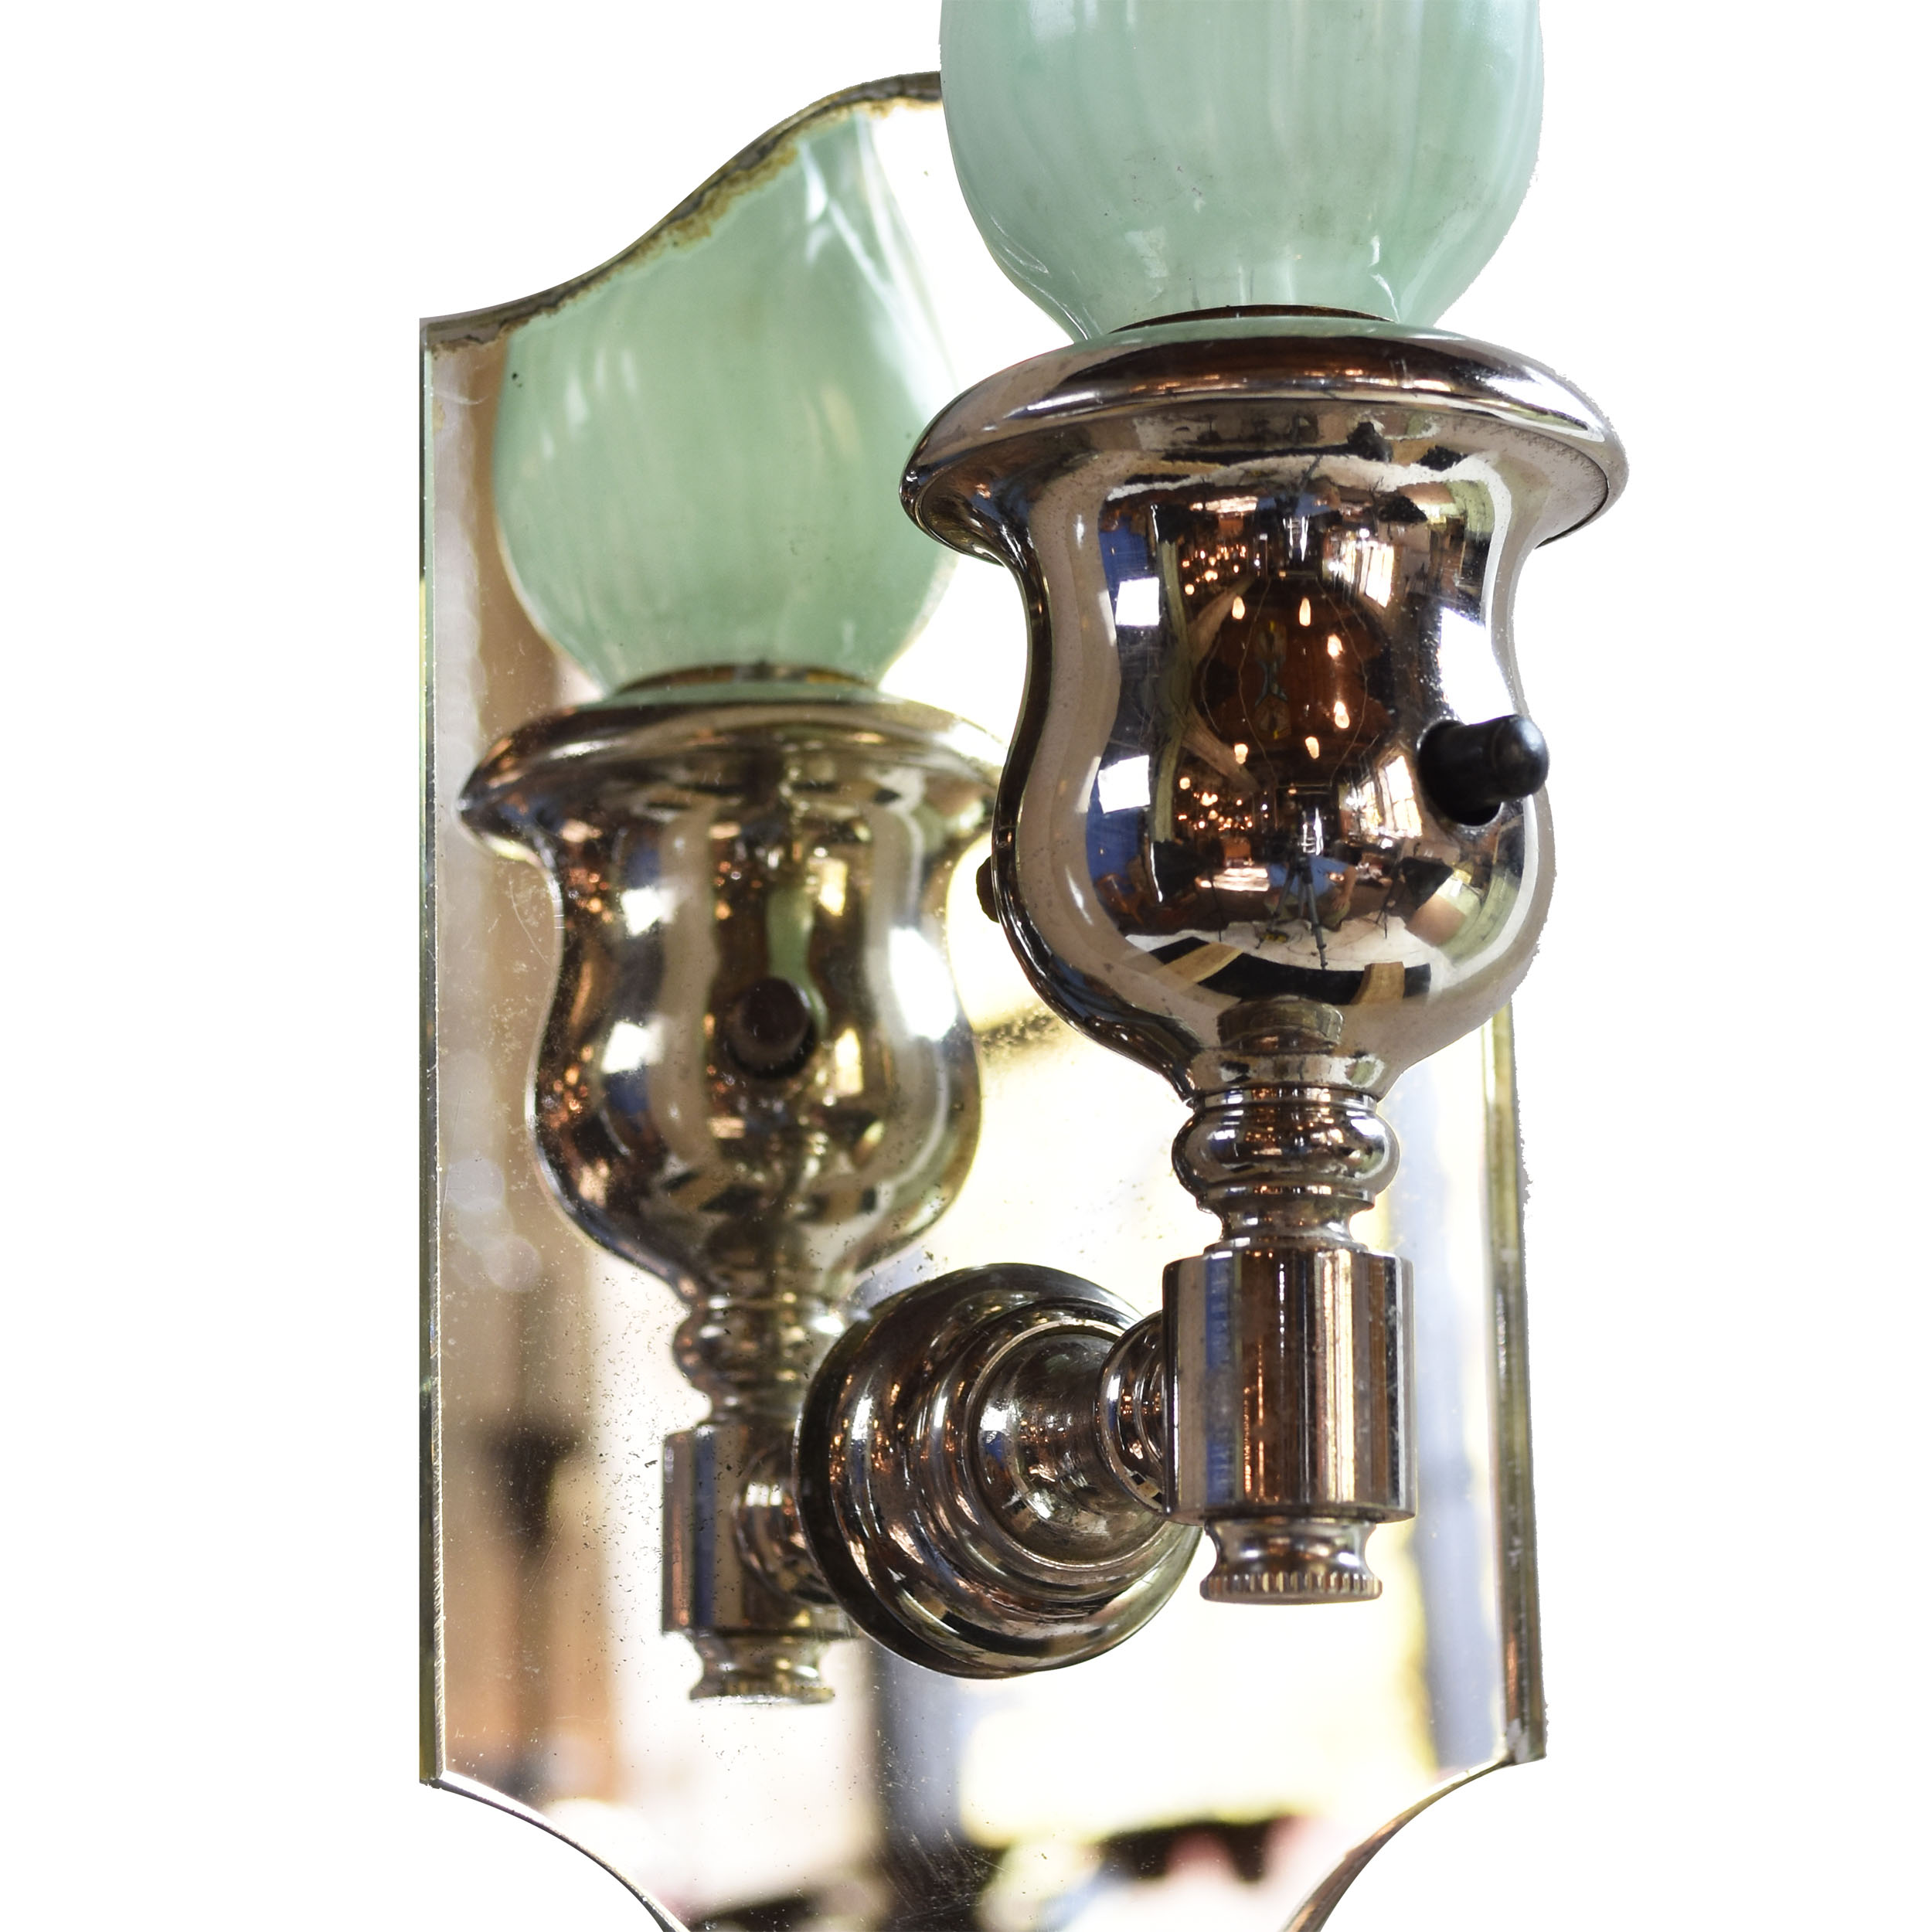 48077 chrome mirror sconce switch detail.jpg